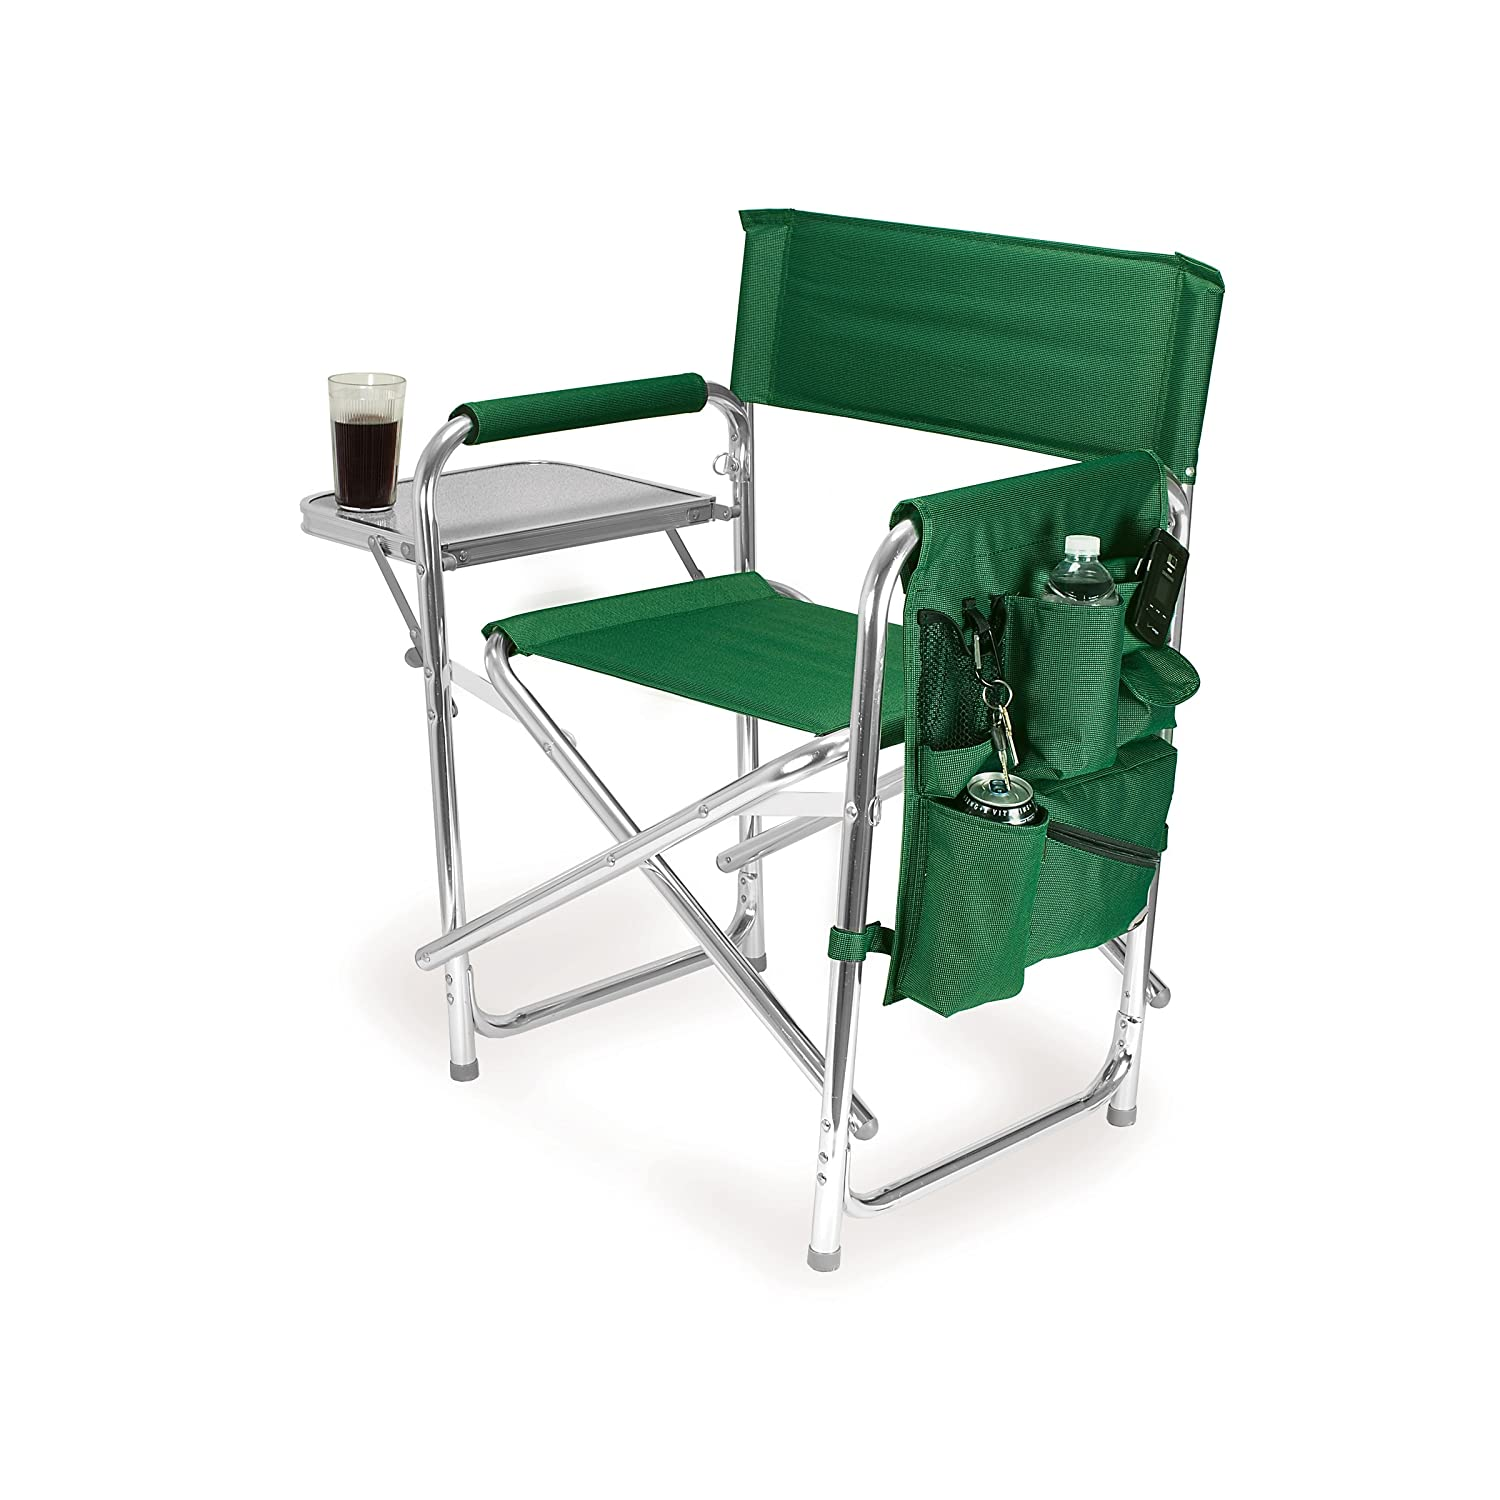 Lightweight Picnic Camping Beach Backyard Portable Folding Sports Chair &